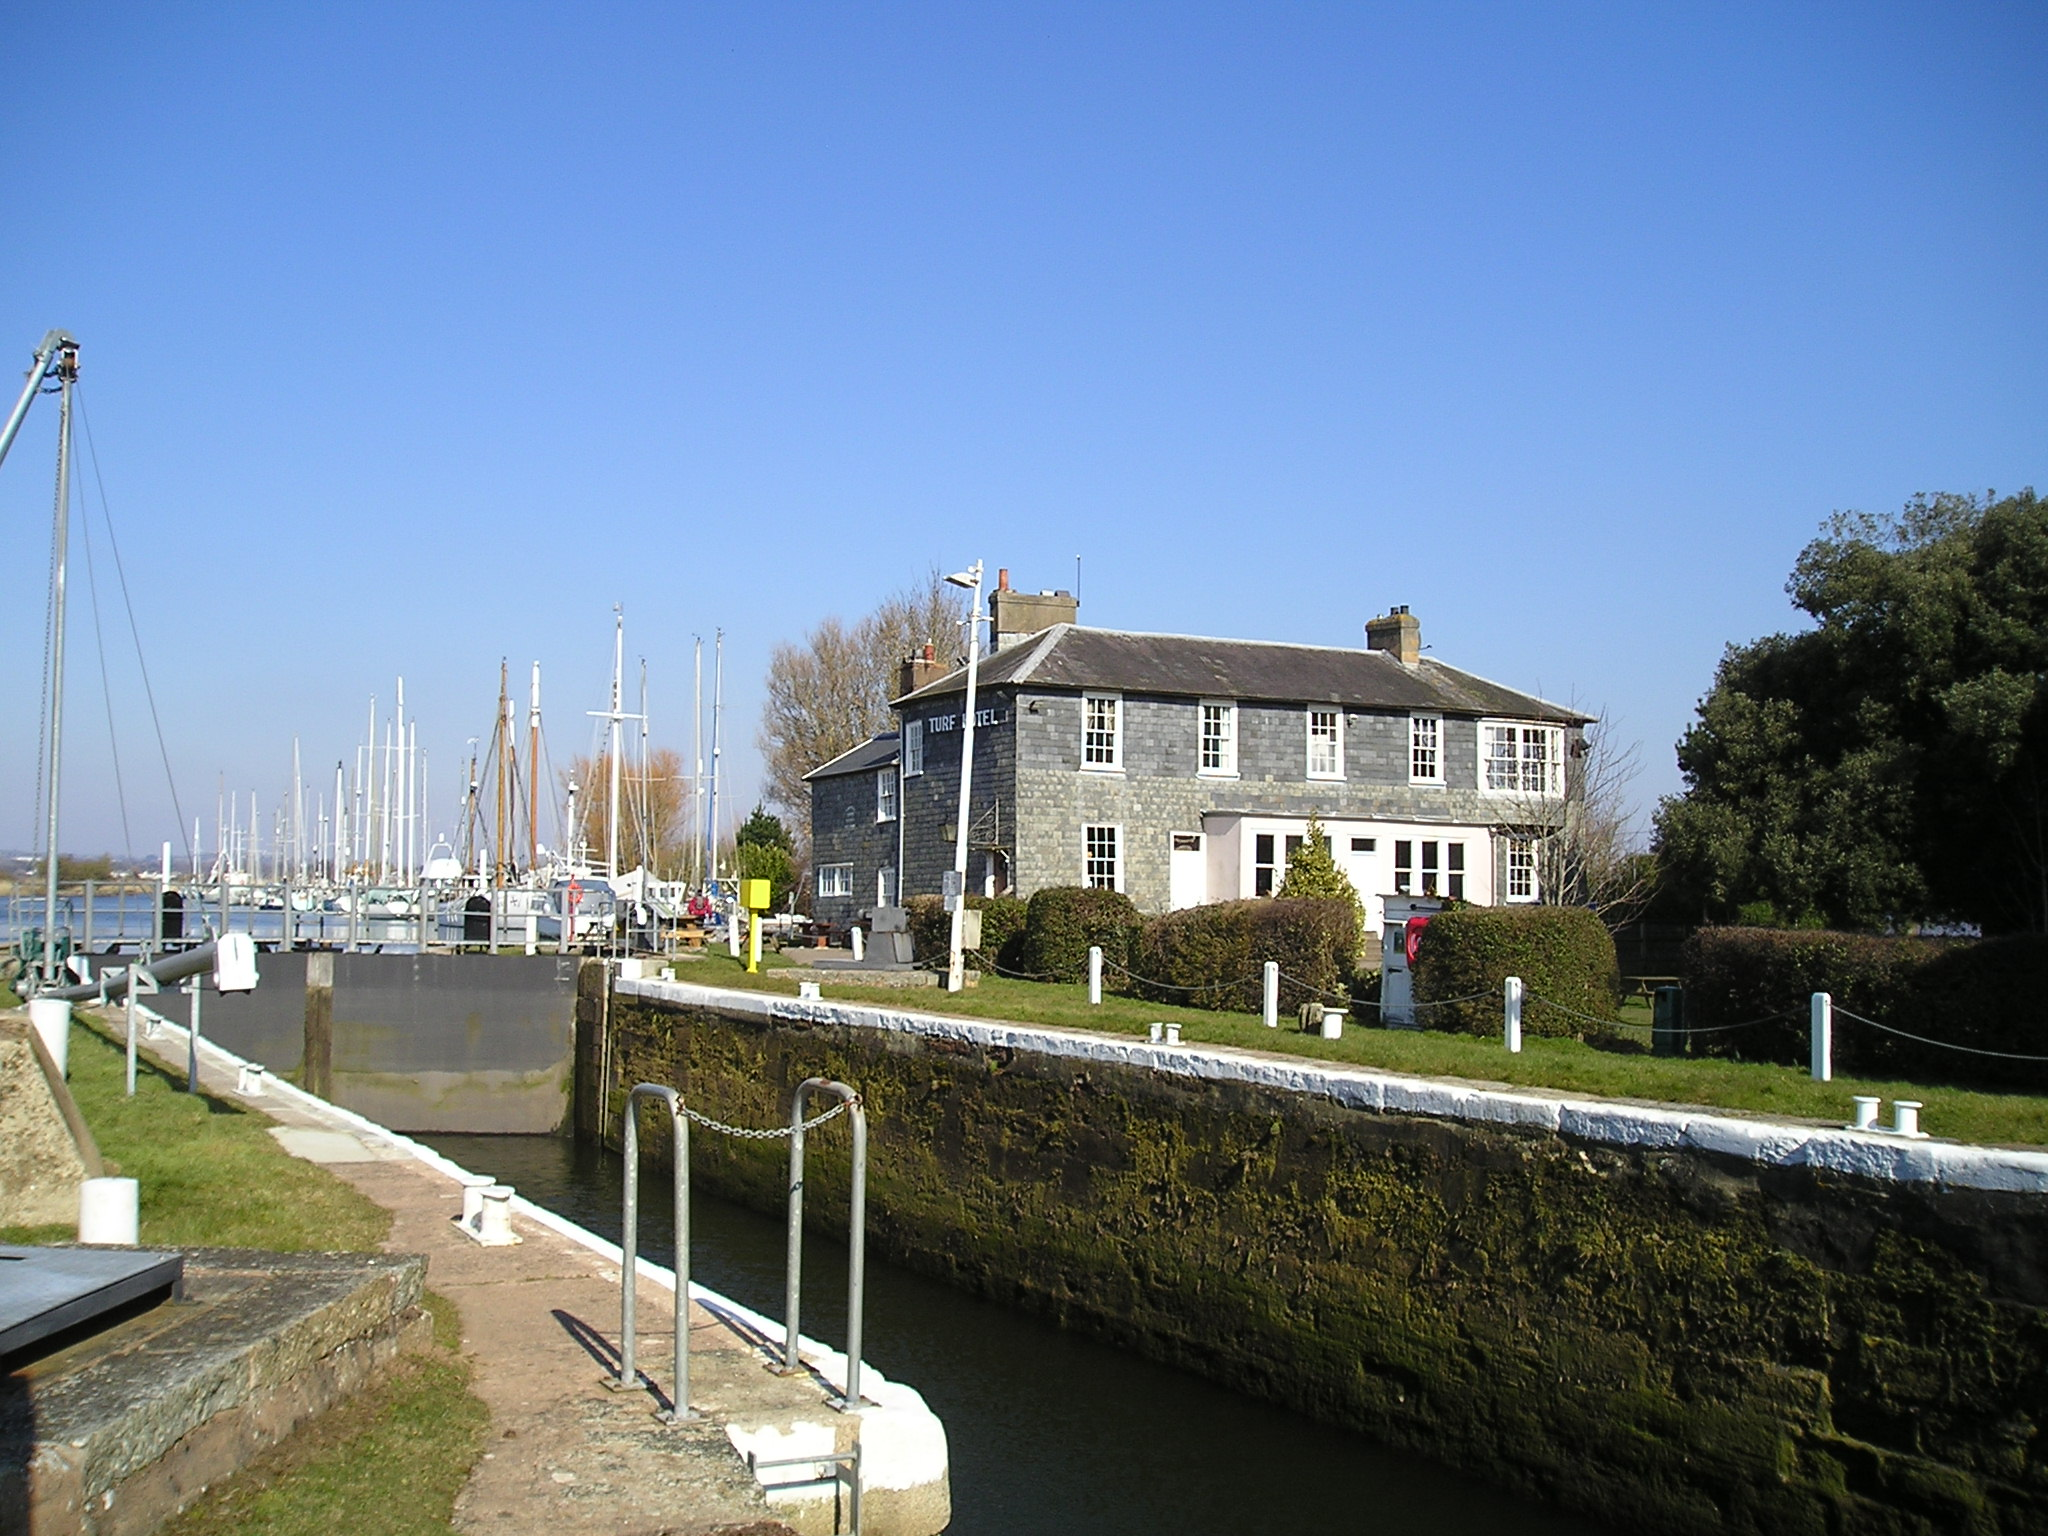 Turf Hotel, Exminster, Exeter, on the Exeter Ship Canal - geograph.org.uk - 1744658.jpg